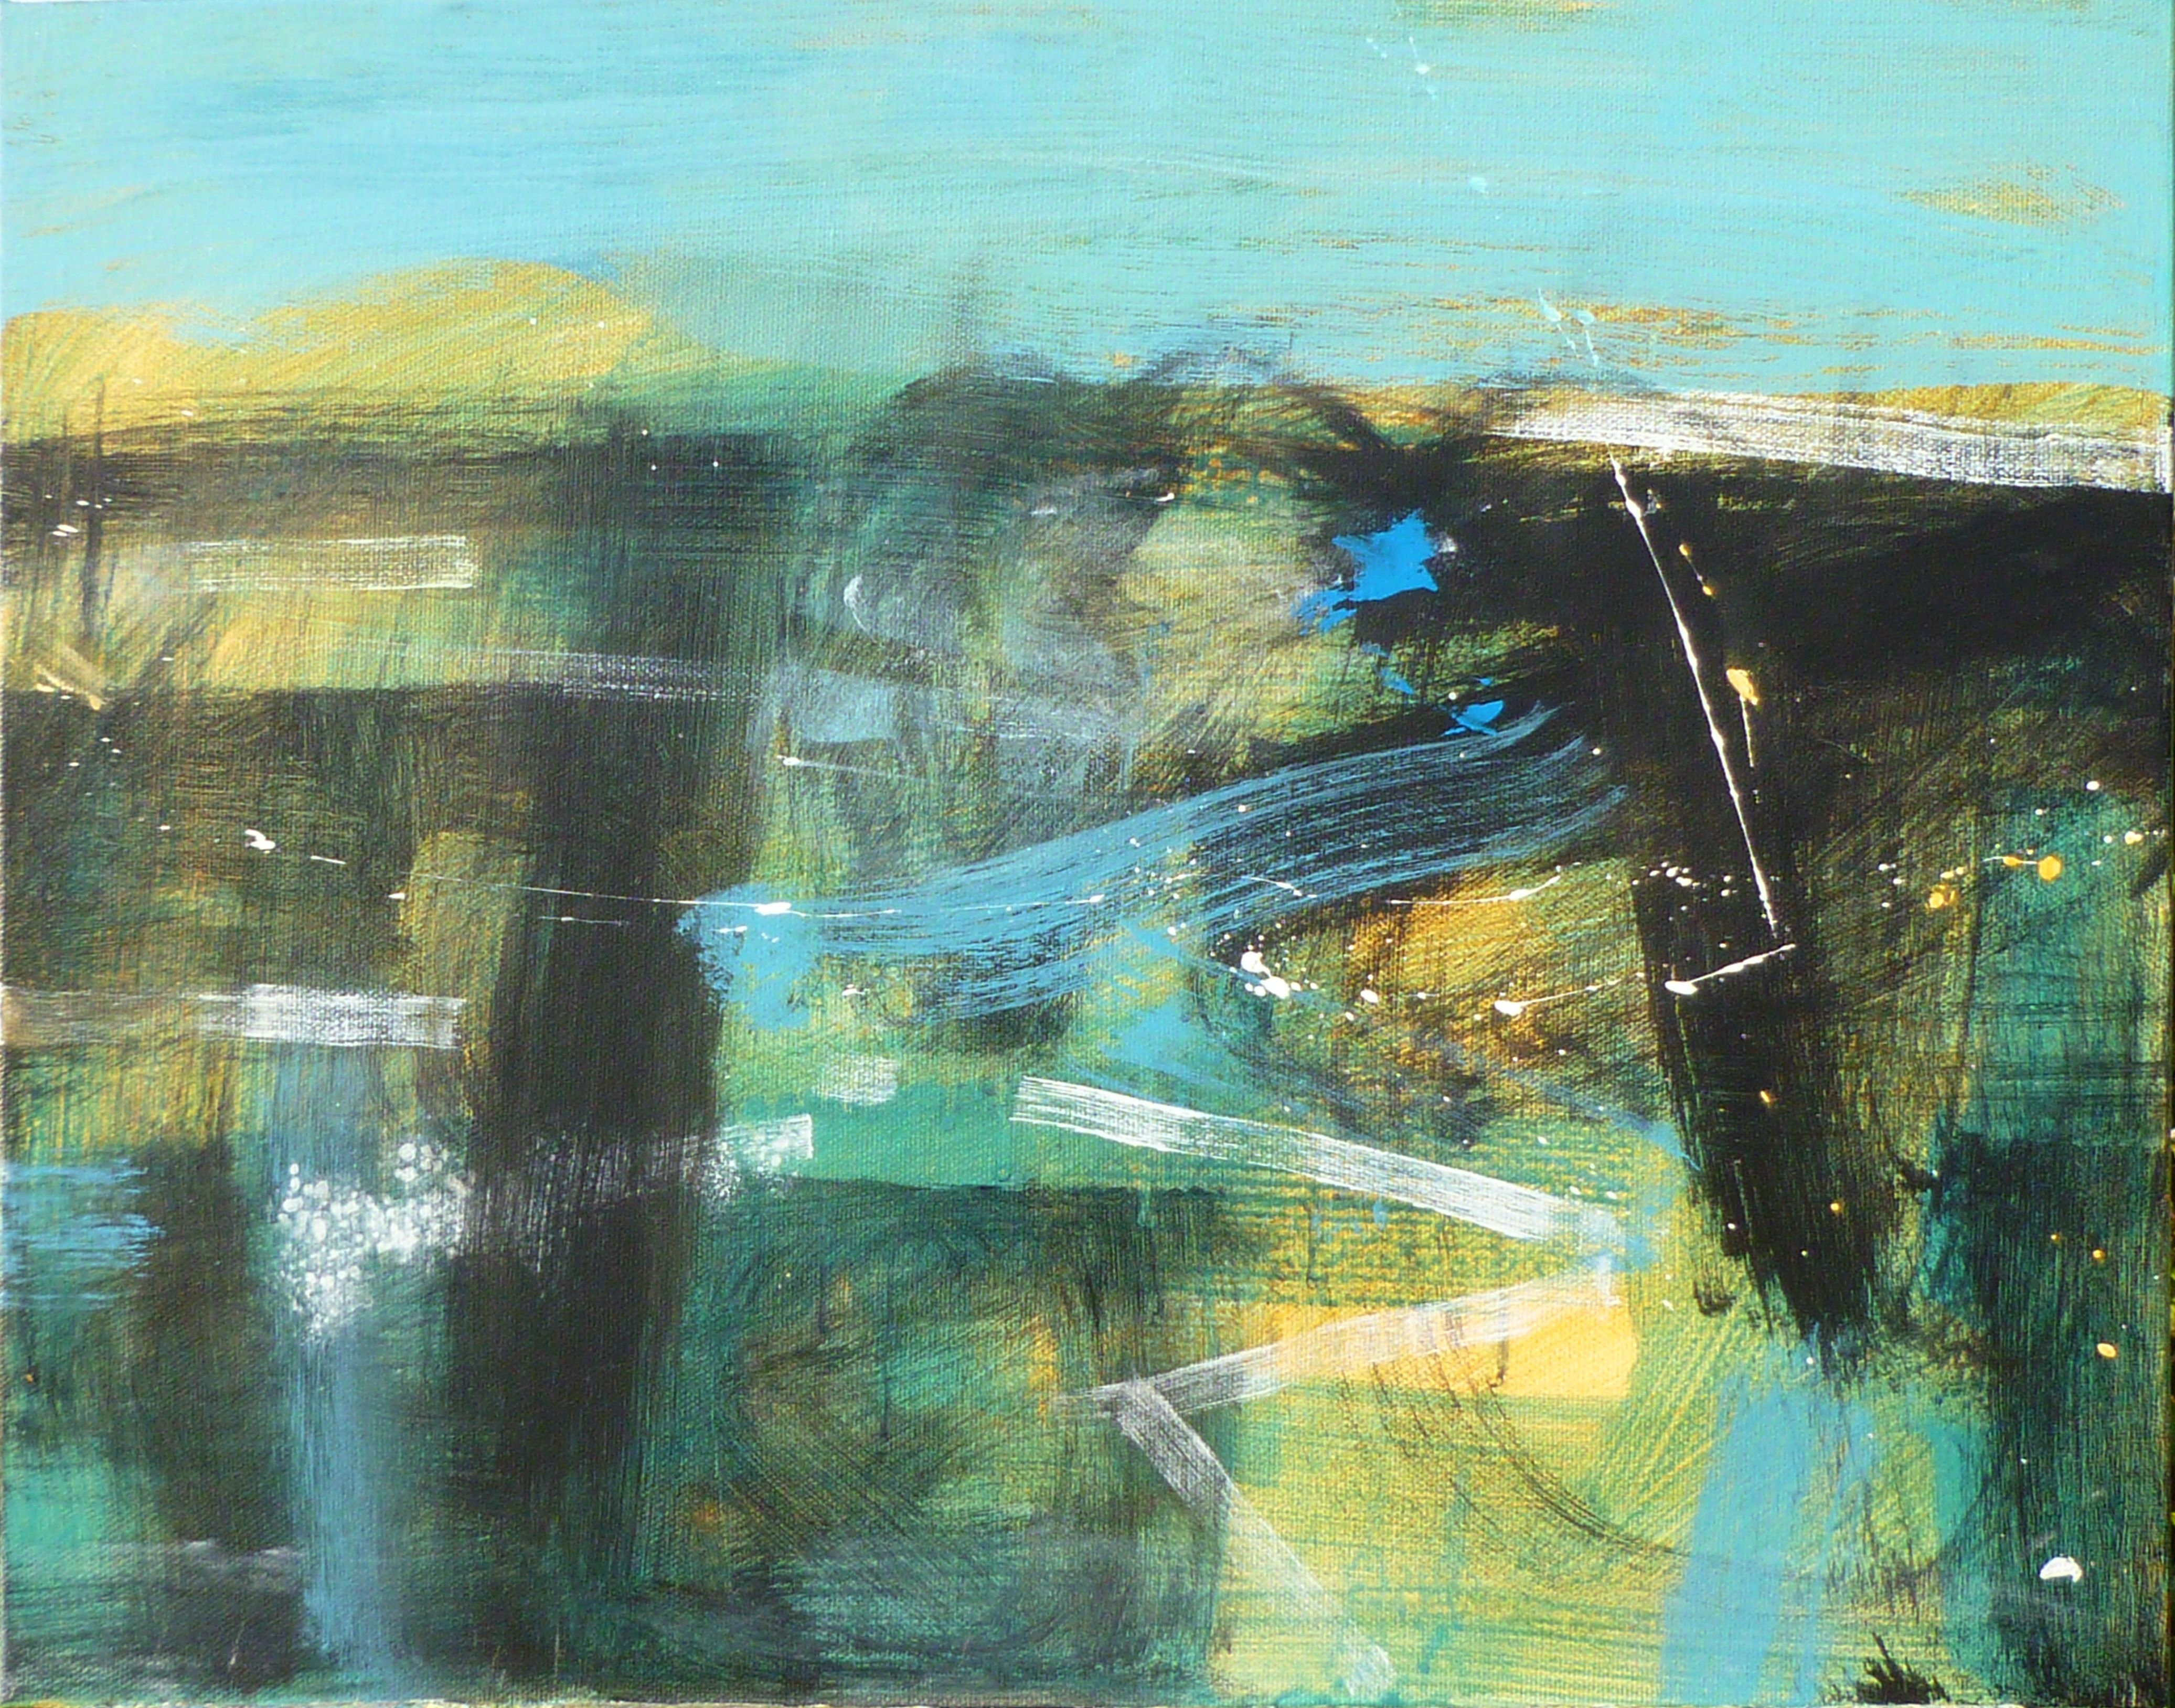 Simon Pooley, A watery place, 40x50cm, mixed media on canvas, £875.